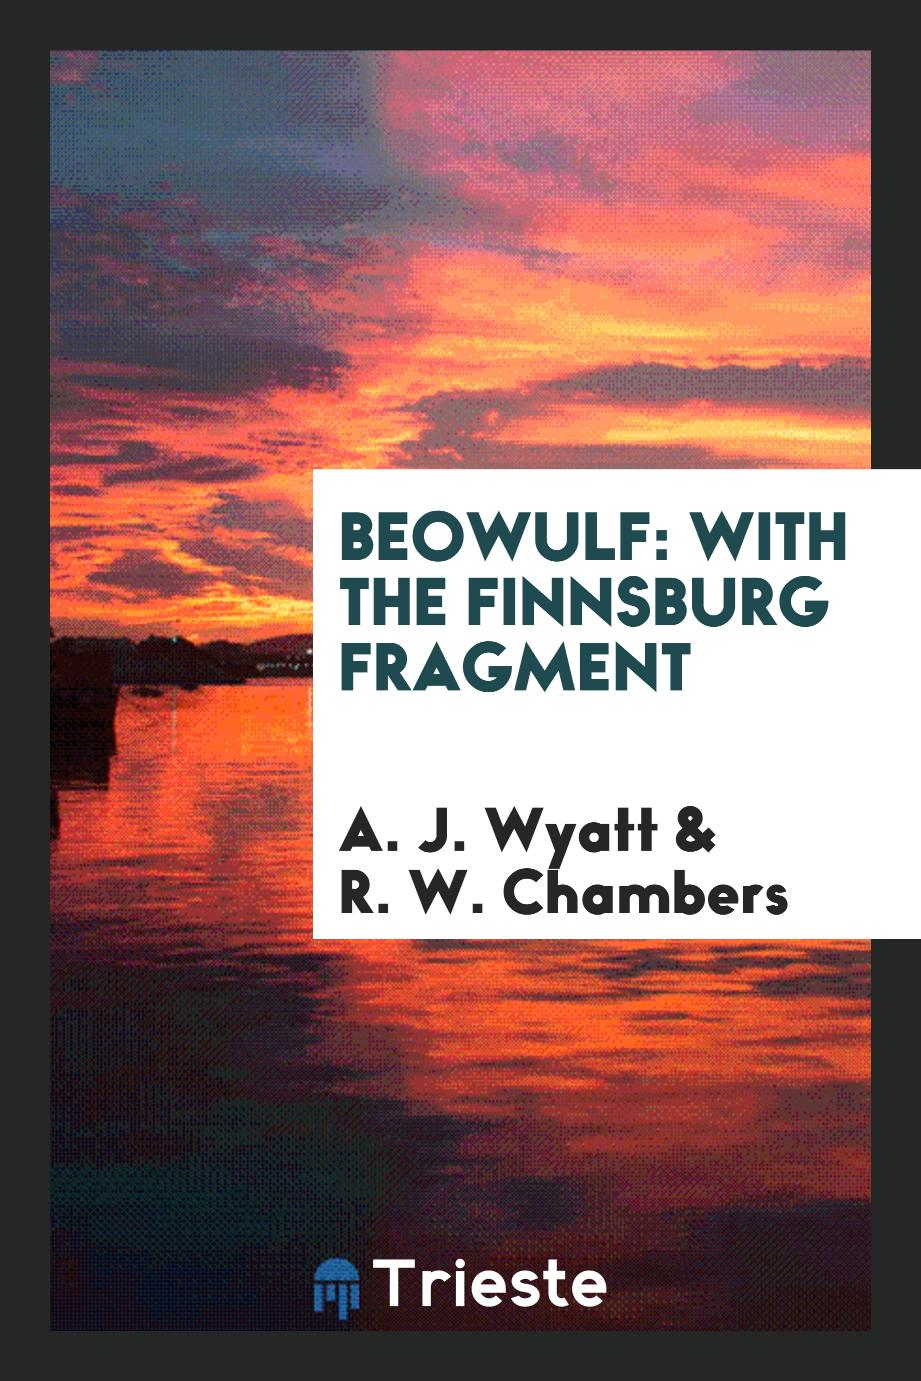 Beowulf: With the Finnsburg Fragment